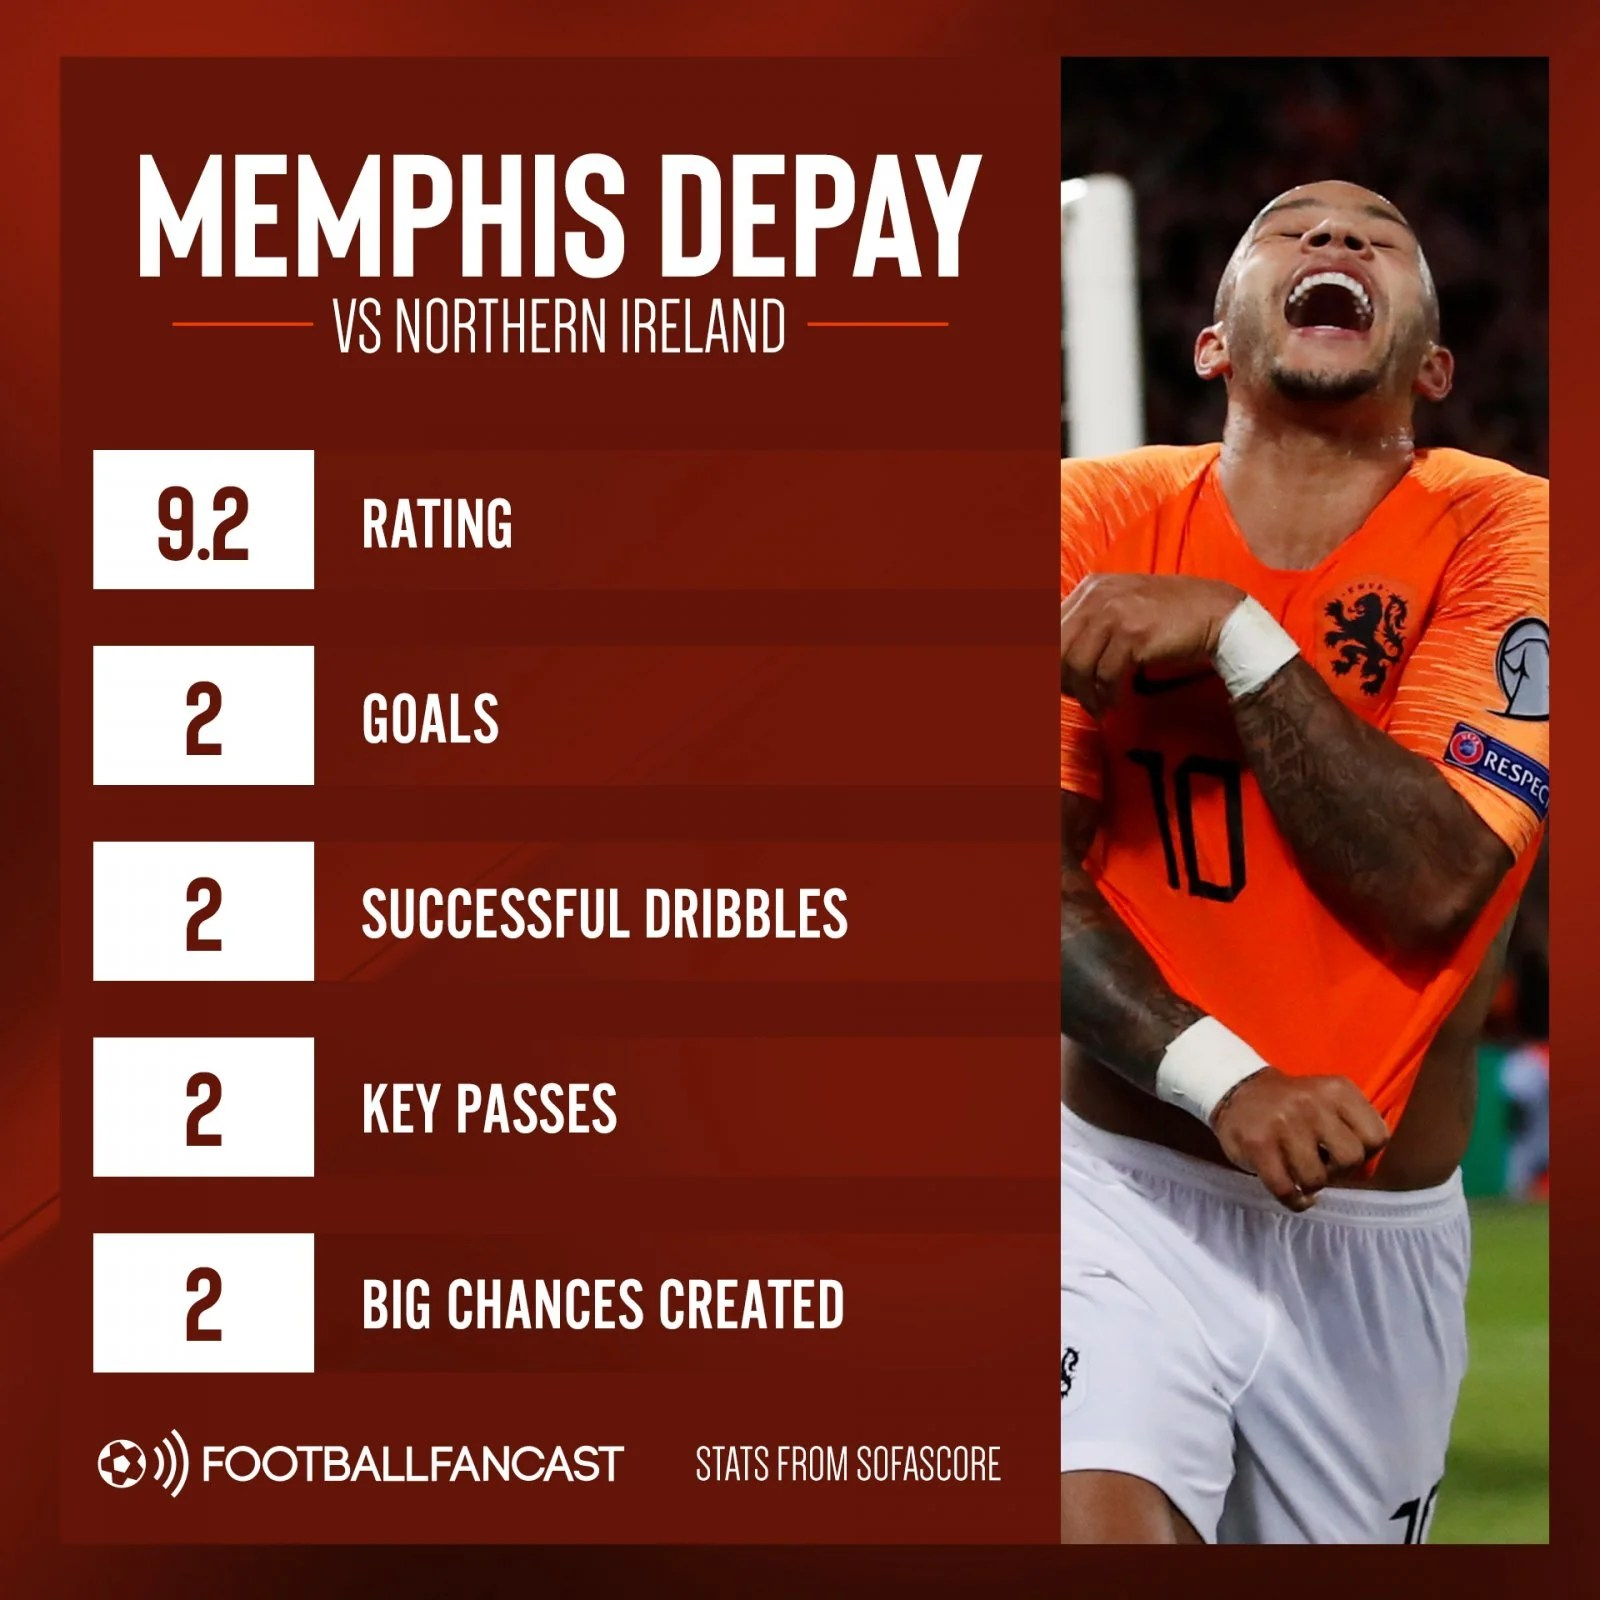 Memphis Depay vs Northern Ireland